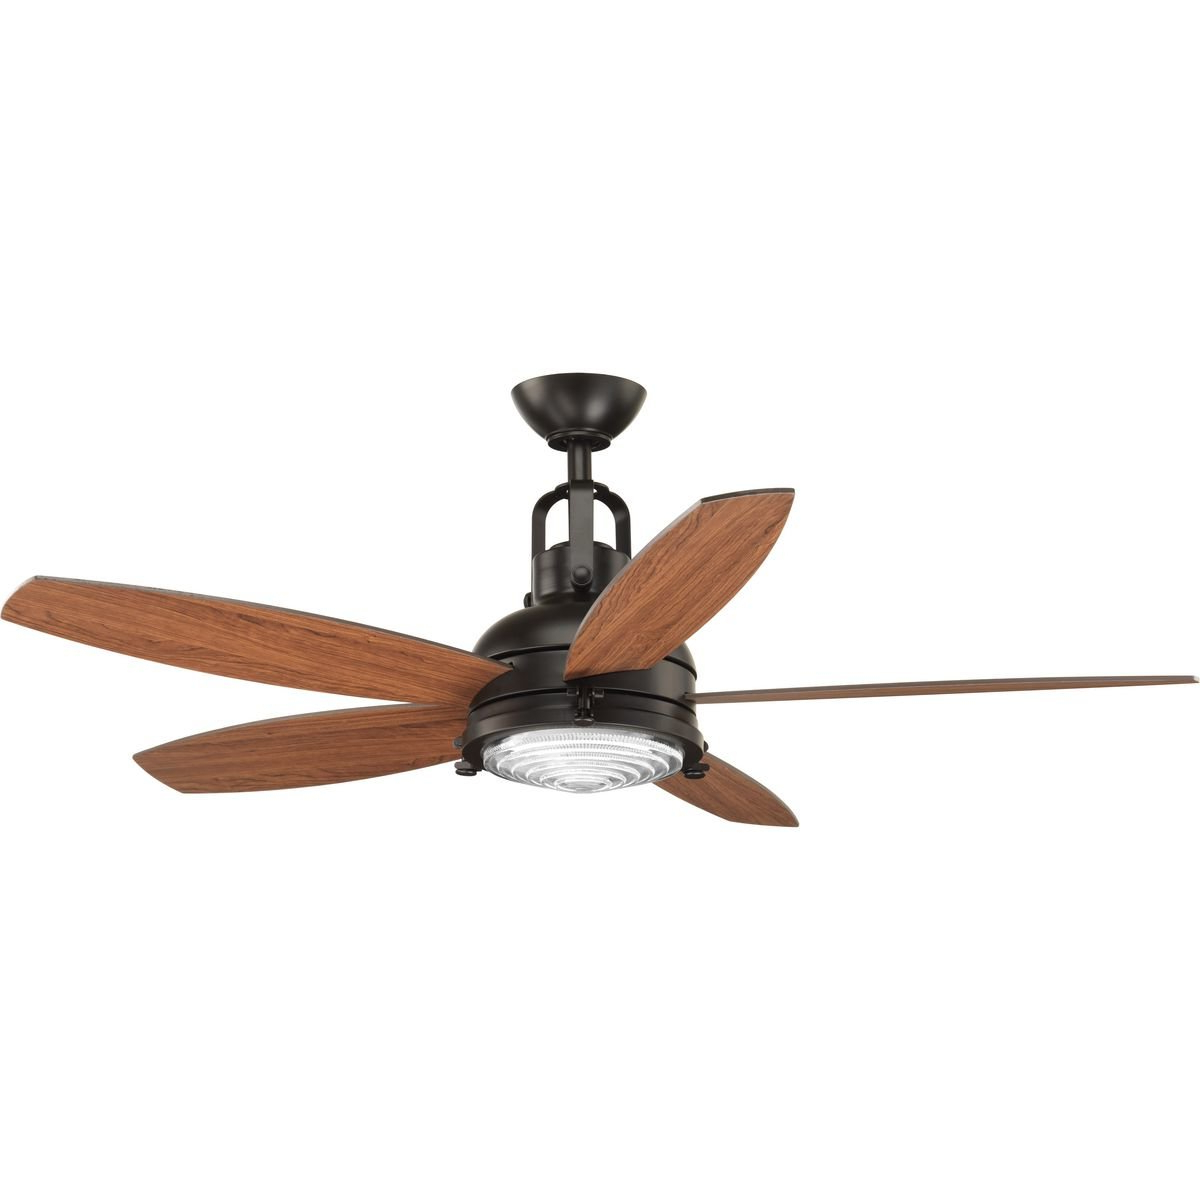 Best And Newest Gehlert 5 Blade Led Ceiling Fan With Remote With Regard To Hamlett 5 Blade Ceiling Fans (View 18 of 20)